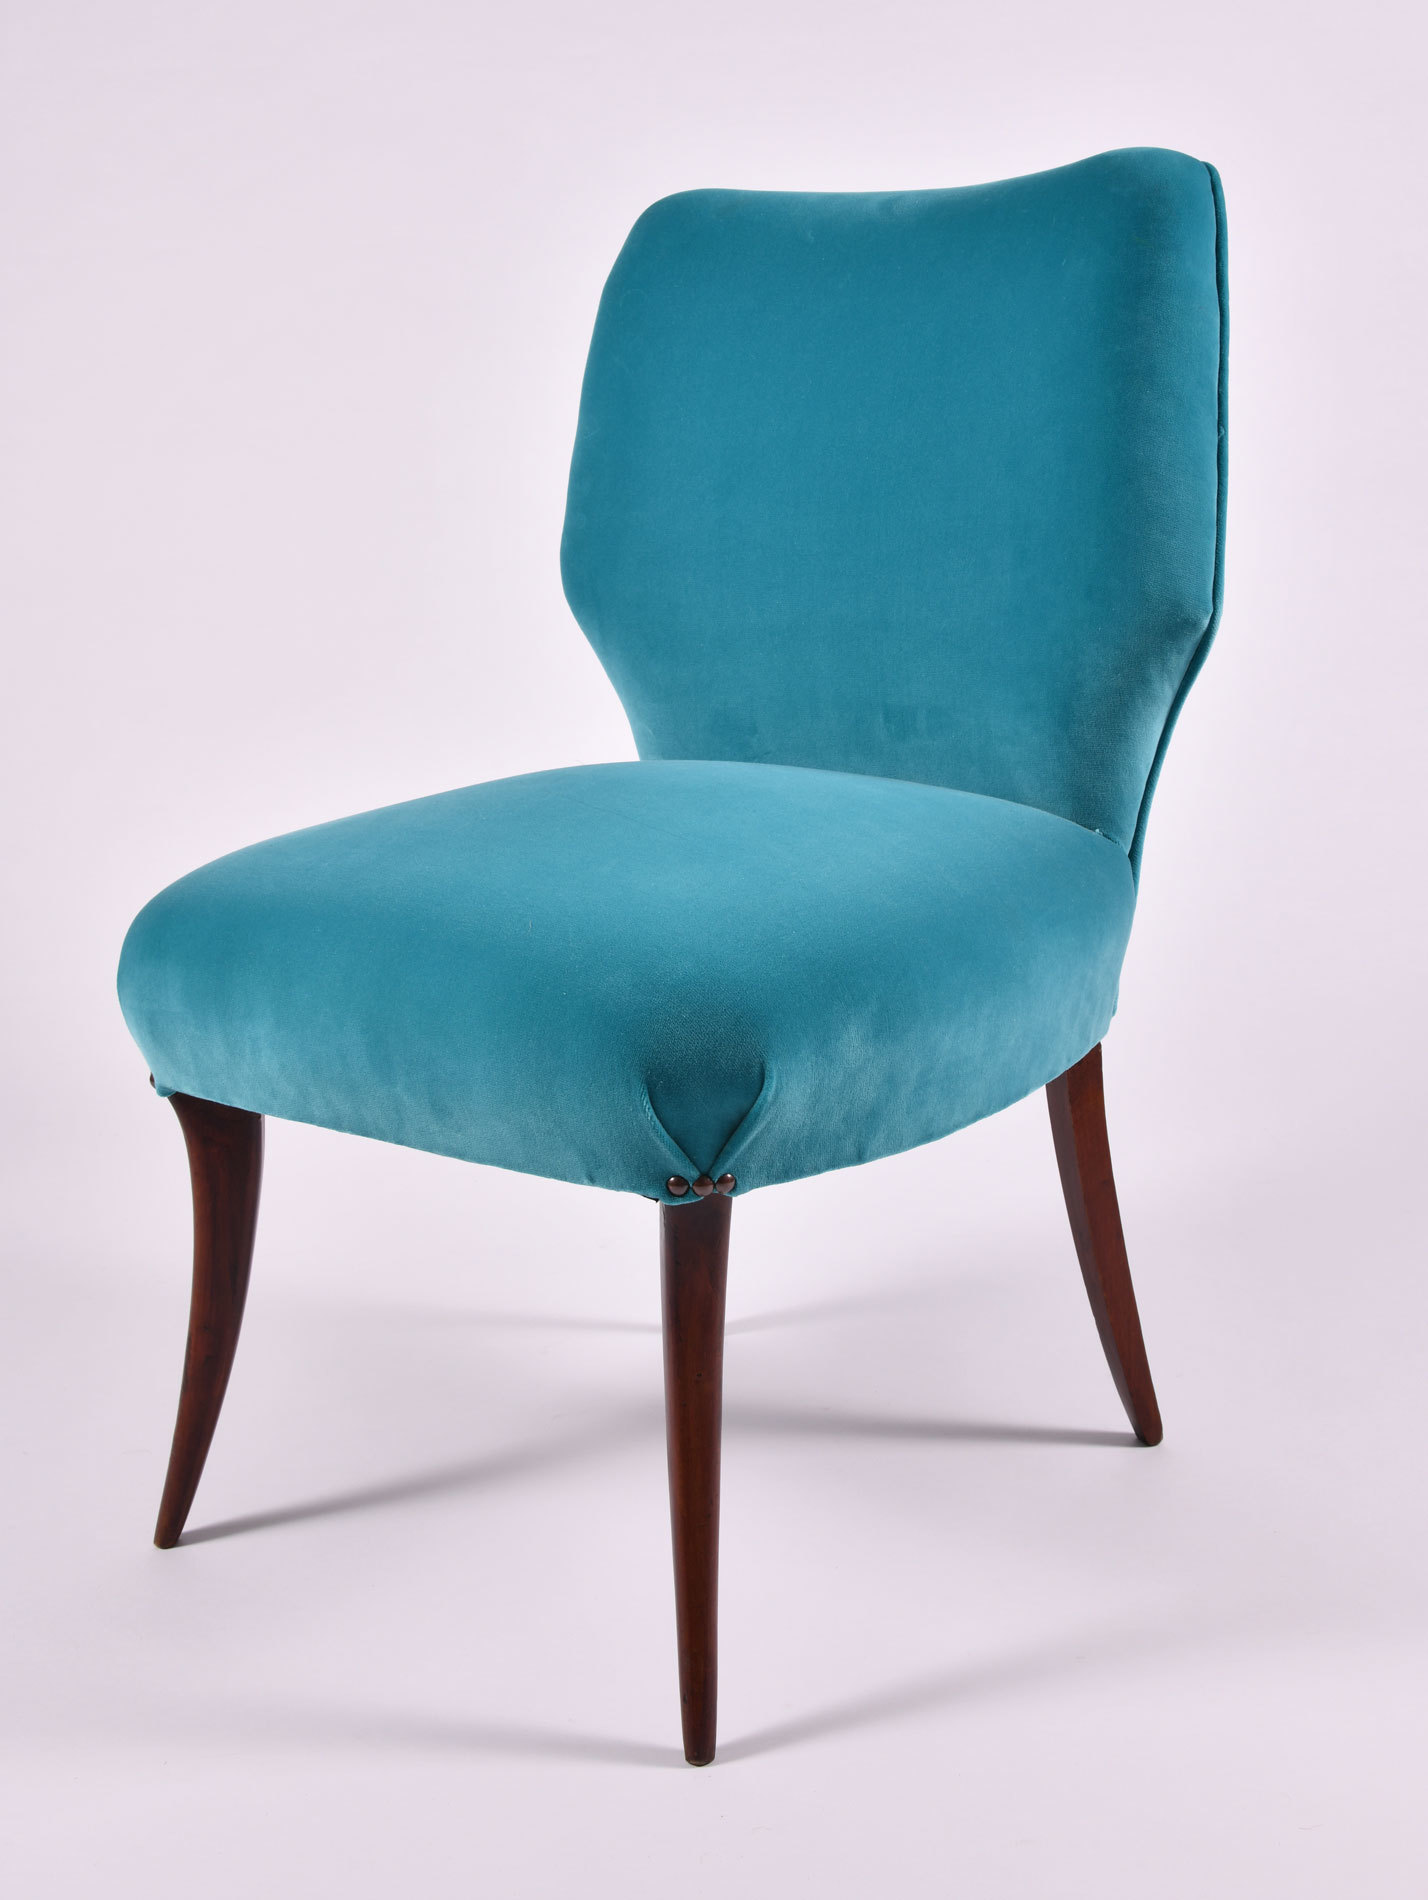 The image for Pair Turquoise Velvet Chairs 04